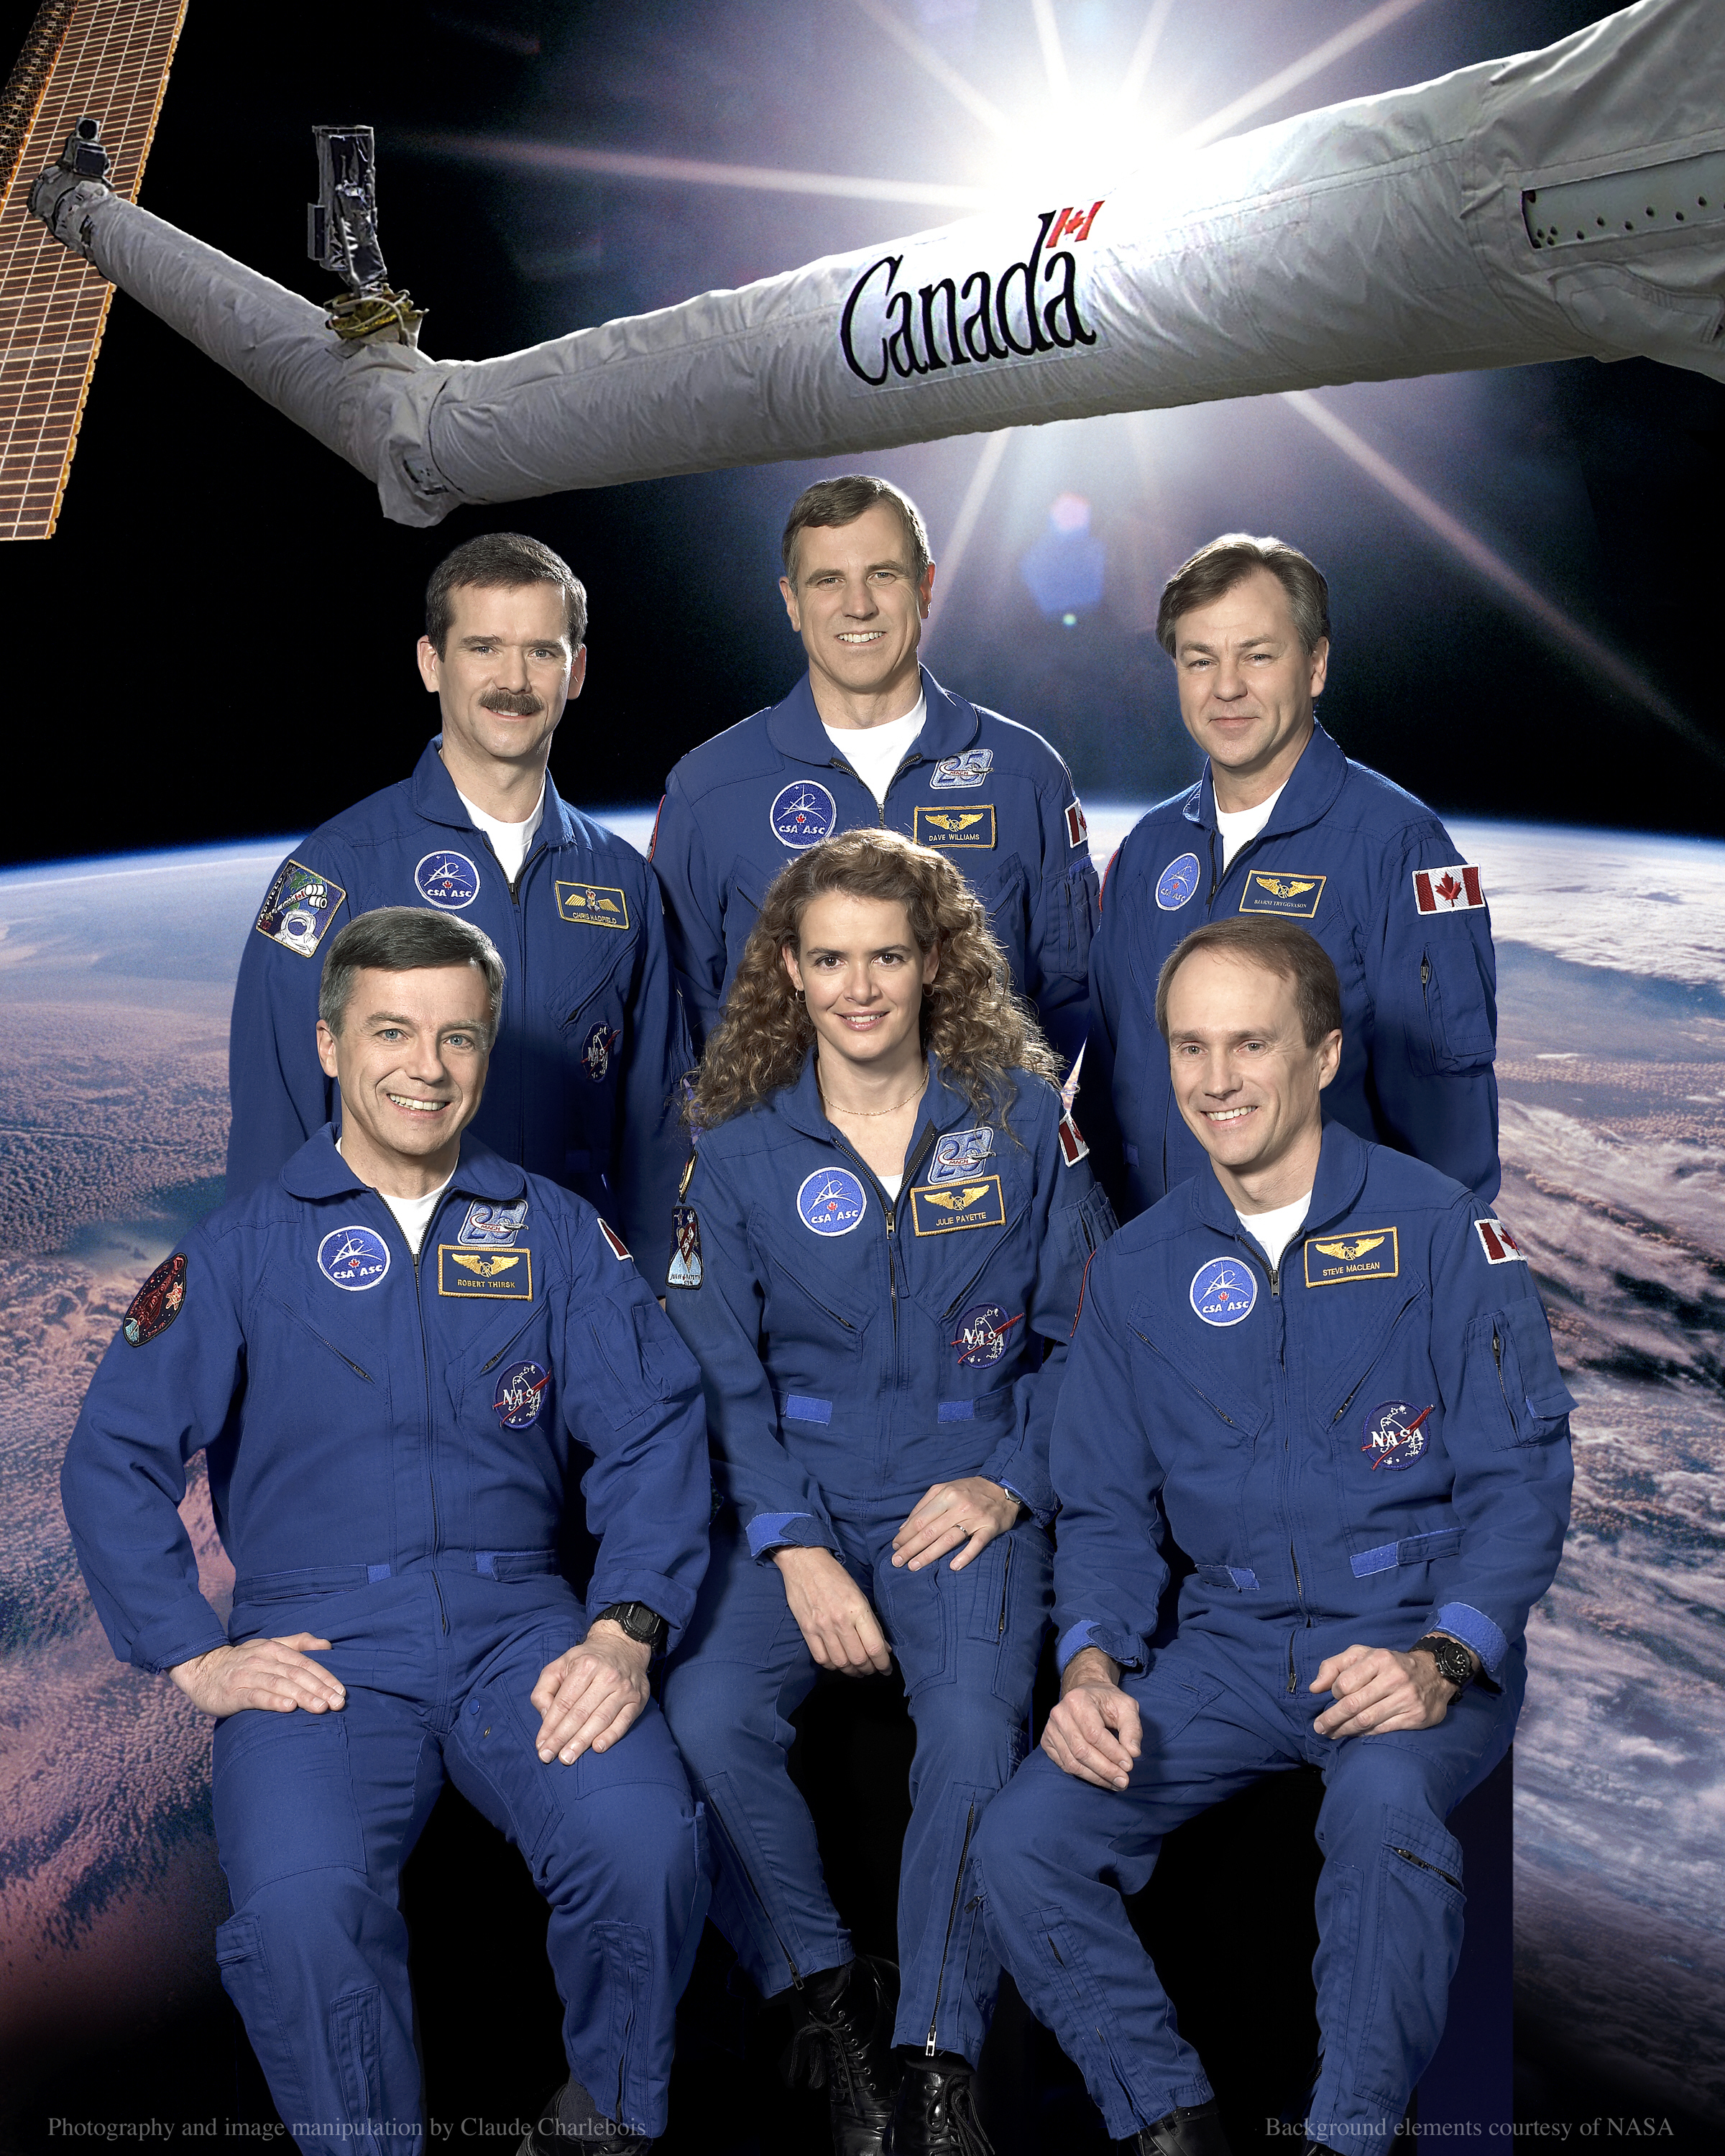 Canadian astronaut team, 2002